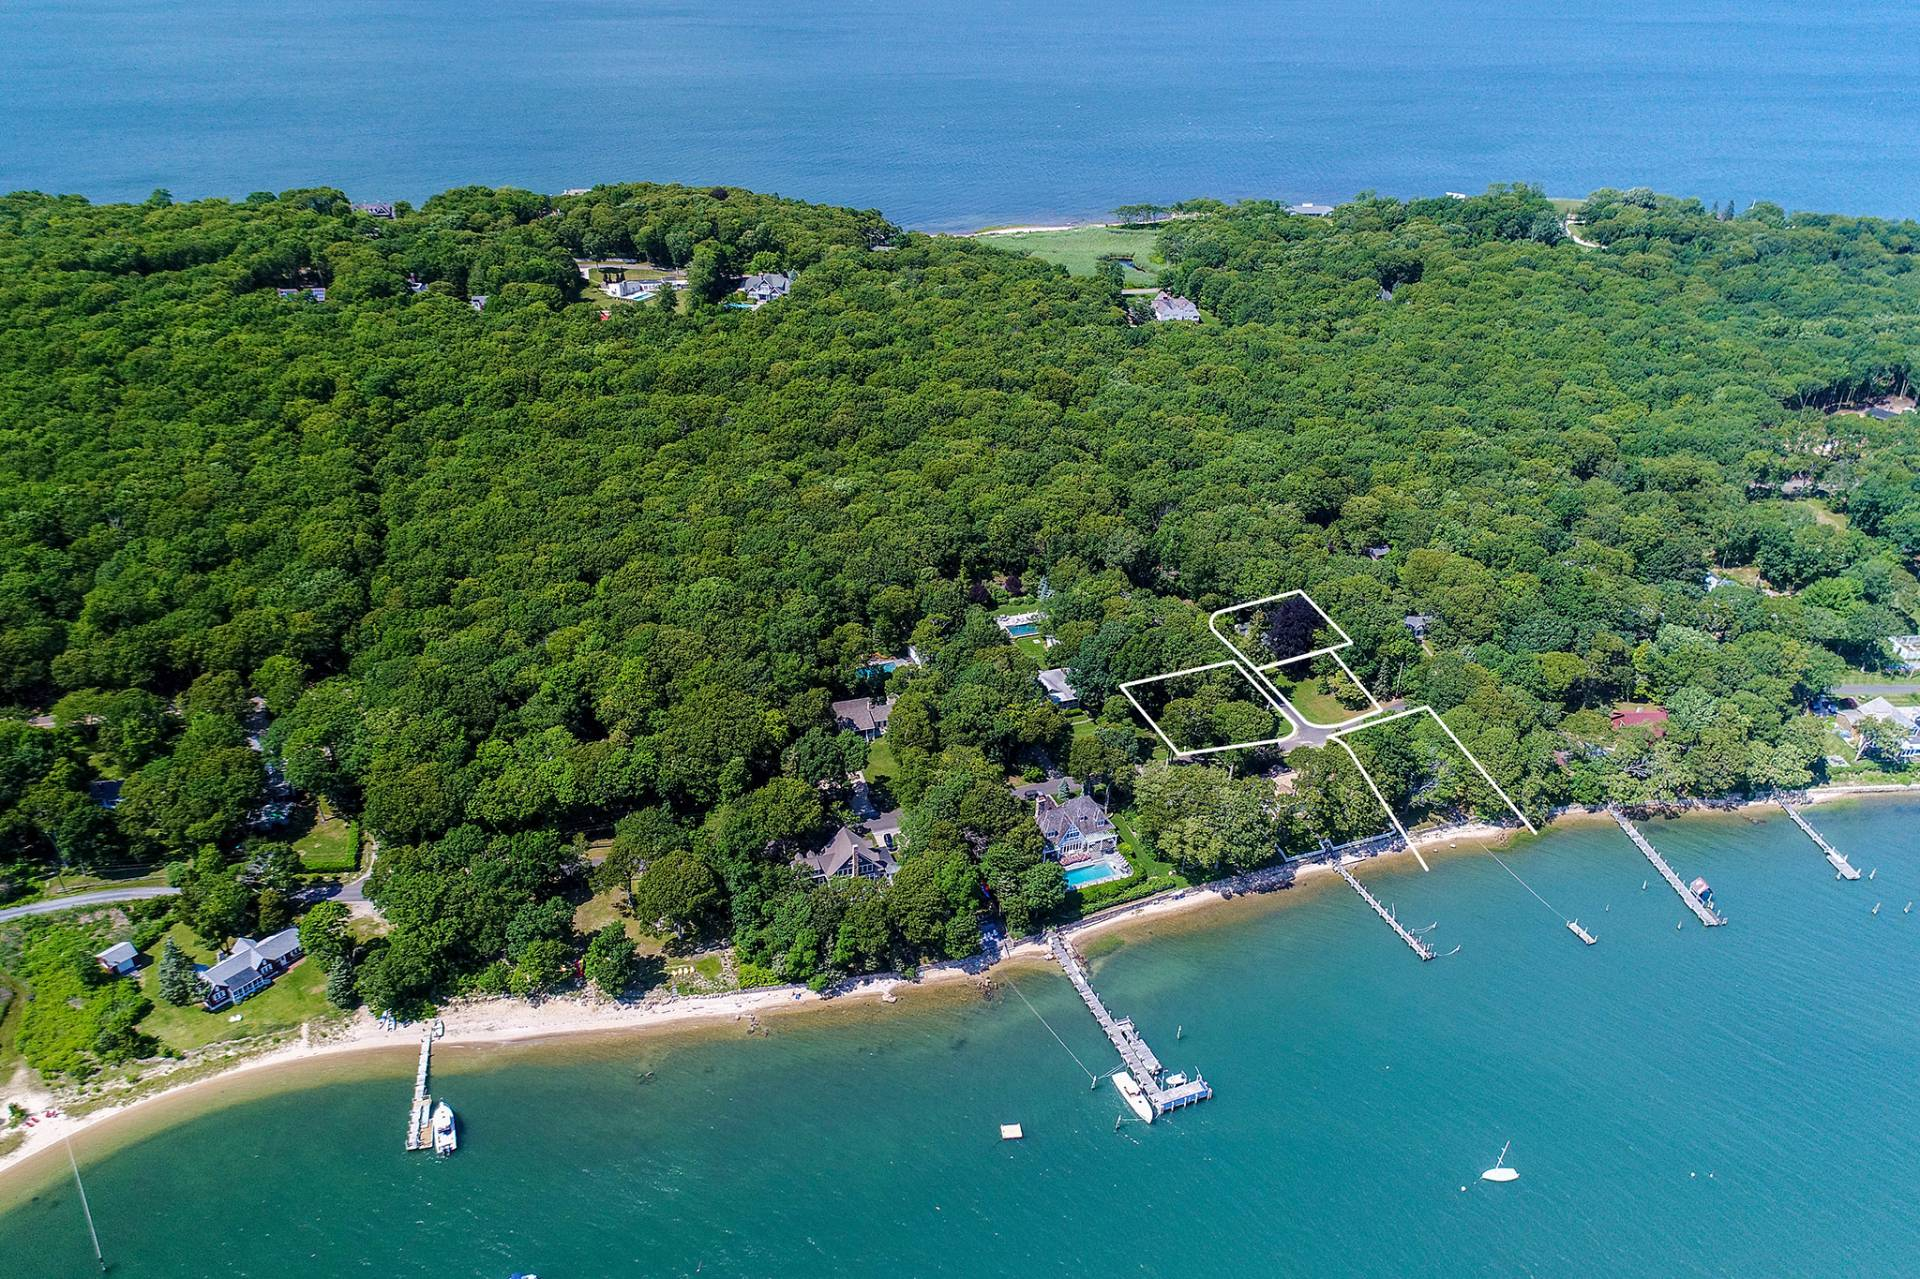 独户住宅 为 销售 在 Shelter Island Harborfront Cape With Guest House 58 Tuthill Drive + 43, 45, 64 Myrtle Road, 谢尔顿岛, 纽约州